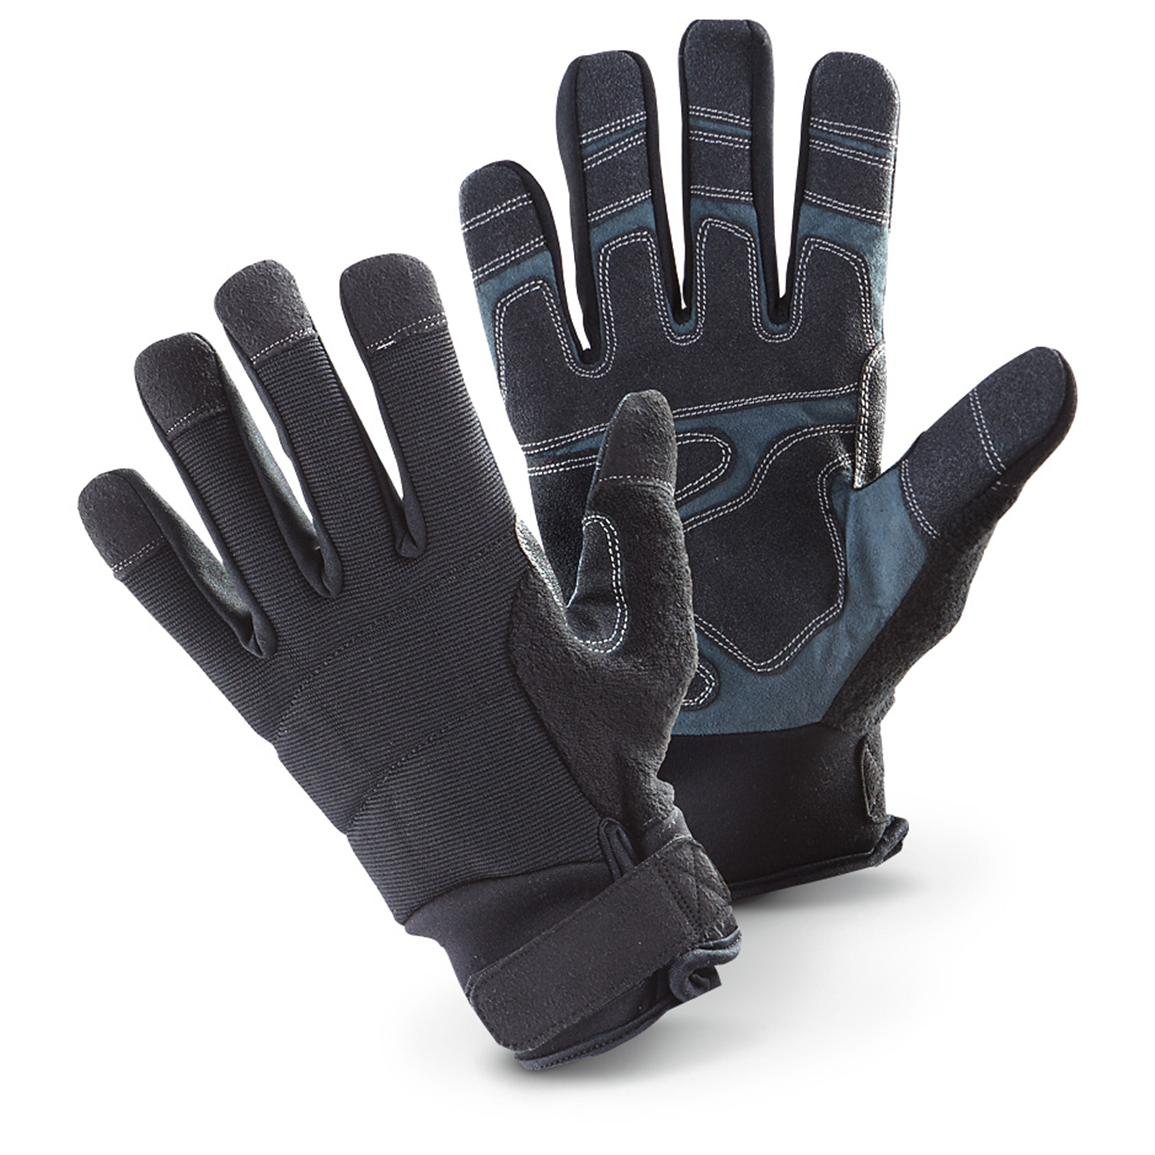 New USAF Military Surplus Suede Palm Work Gloves, Black